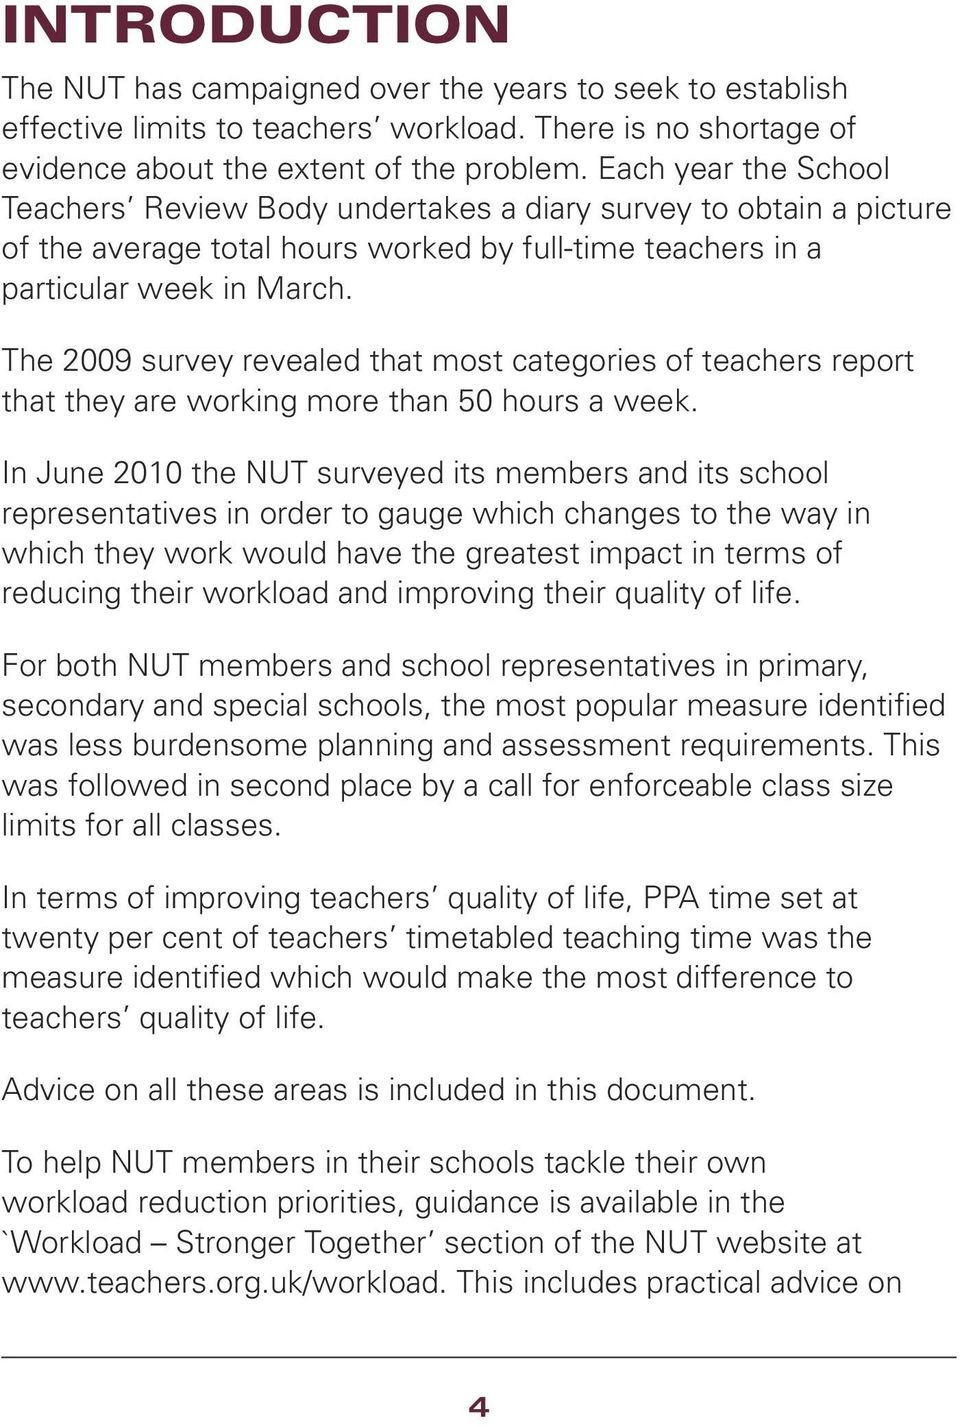 The 2009 survey revealed that most categories of teachers report that they are working more than 50 hours a week.